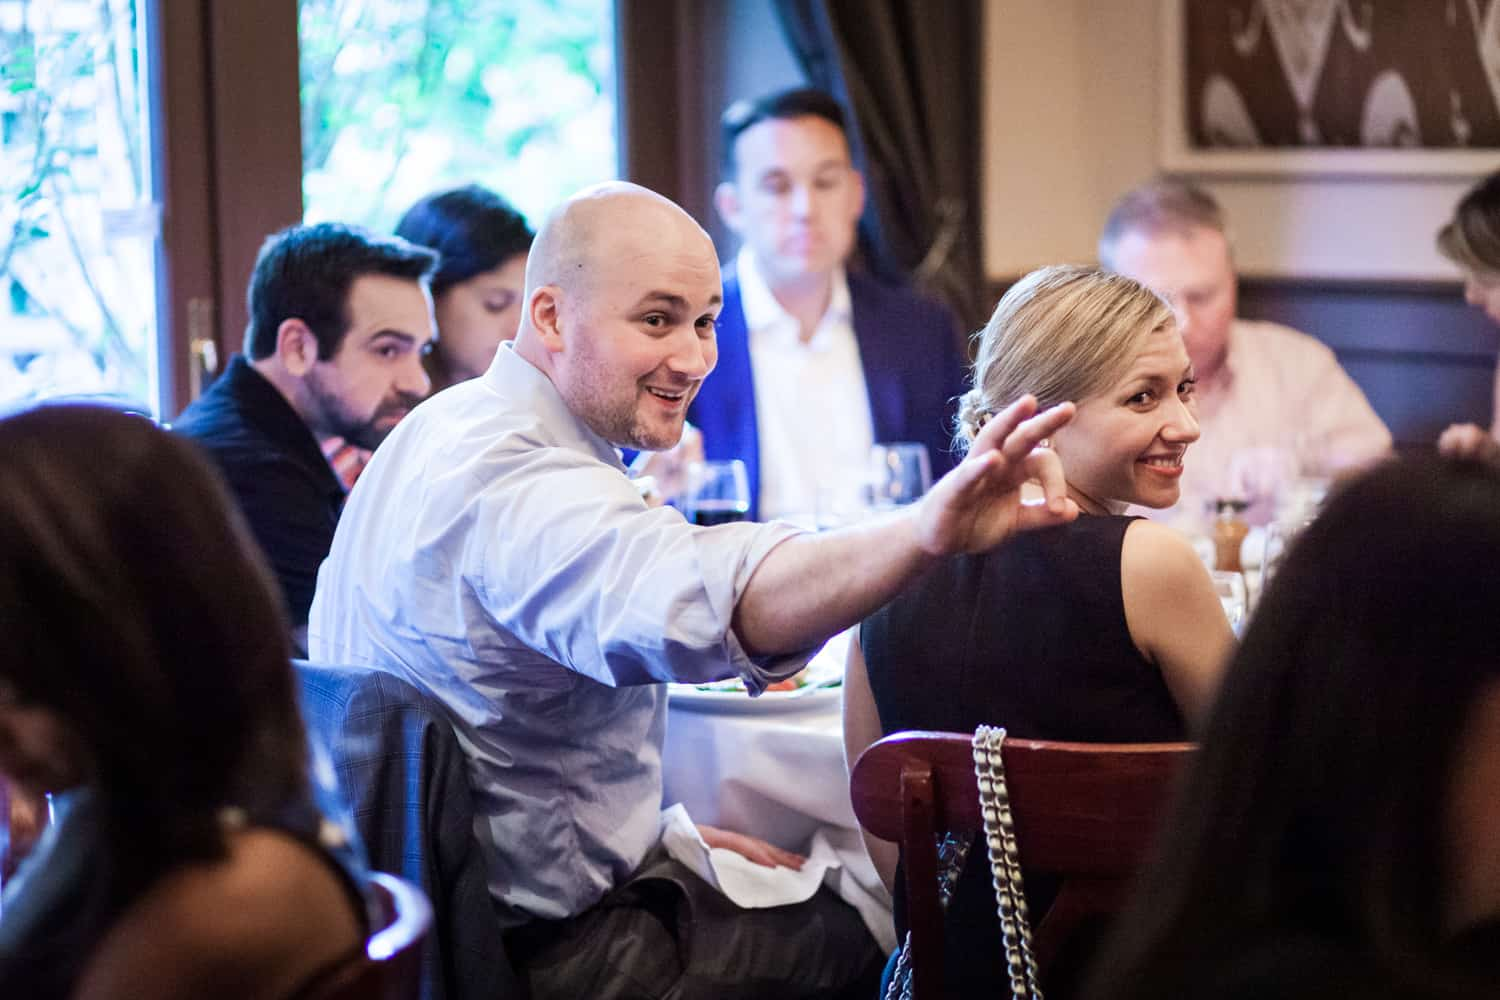 Guests having fun at a Hoboken rehearsal dinner